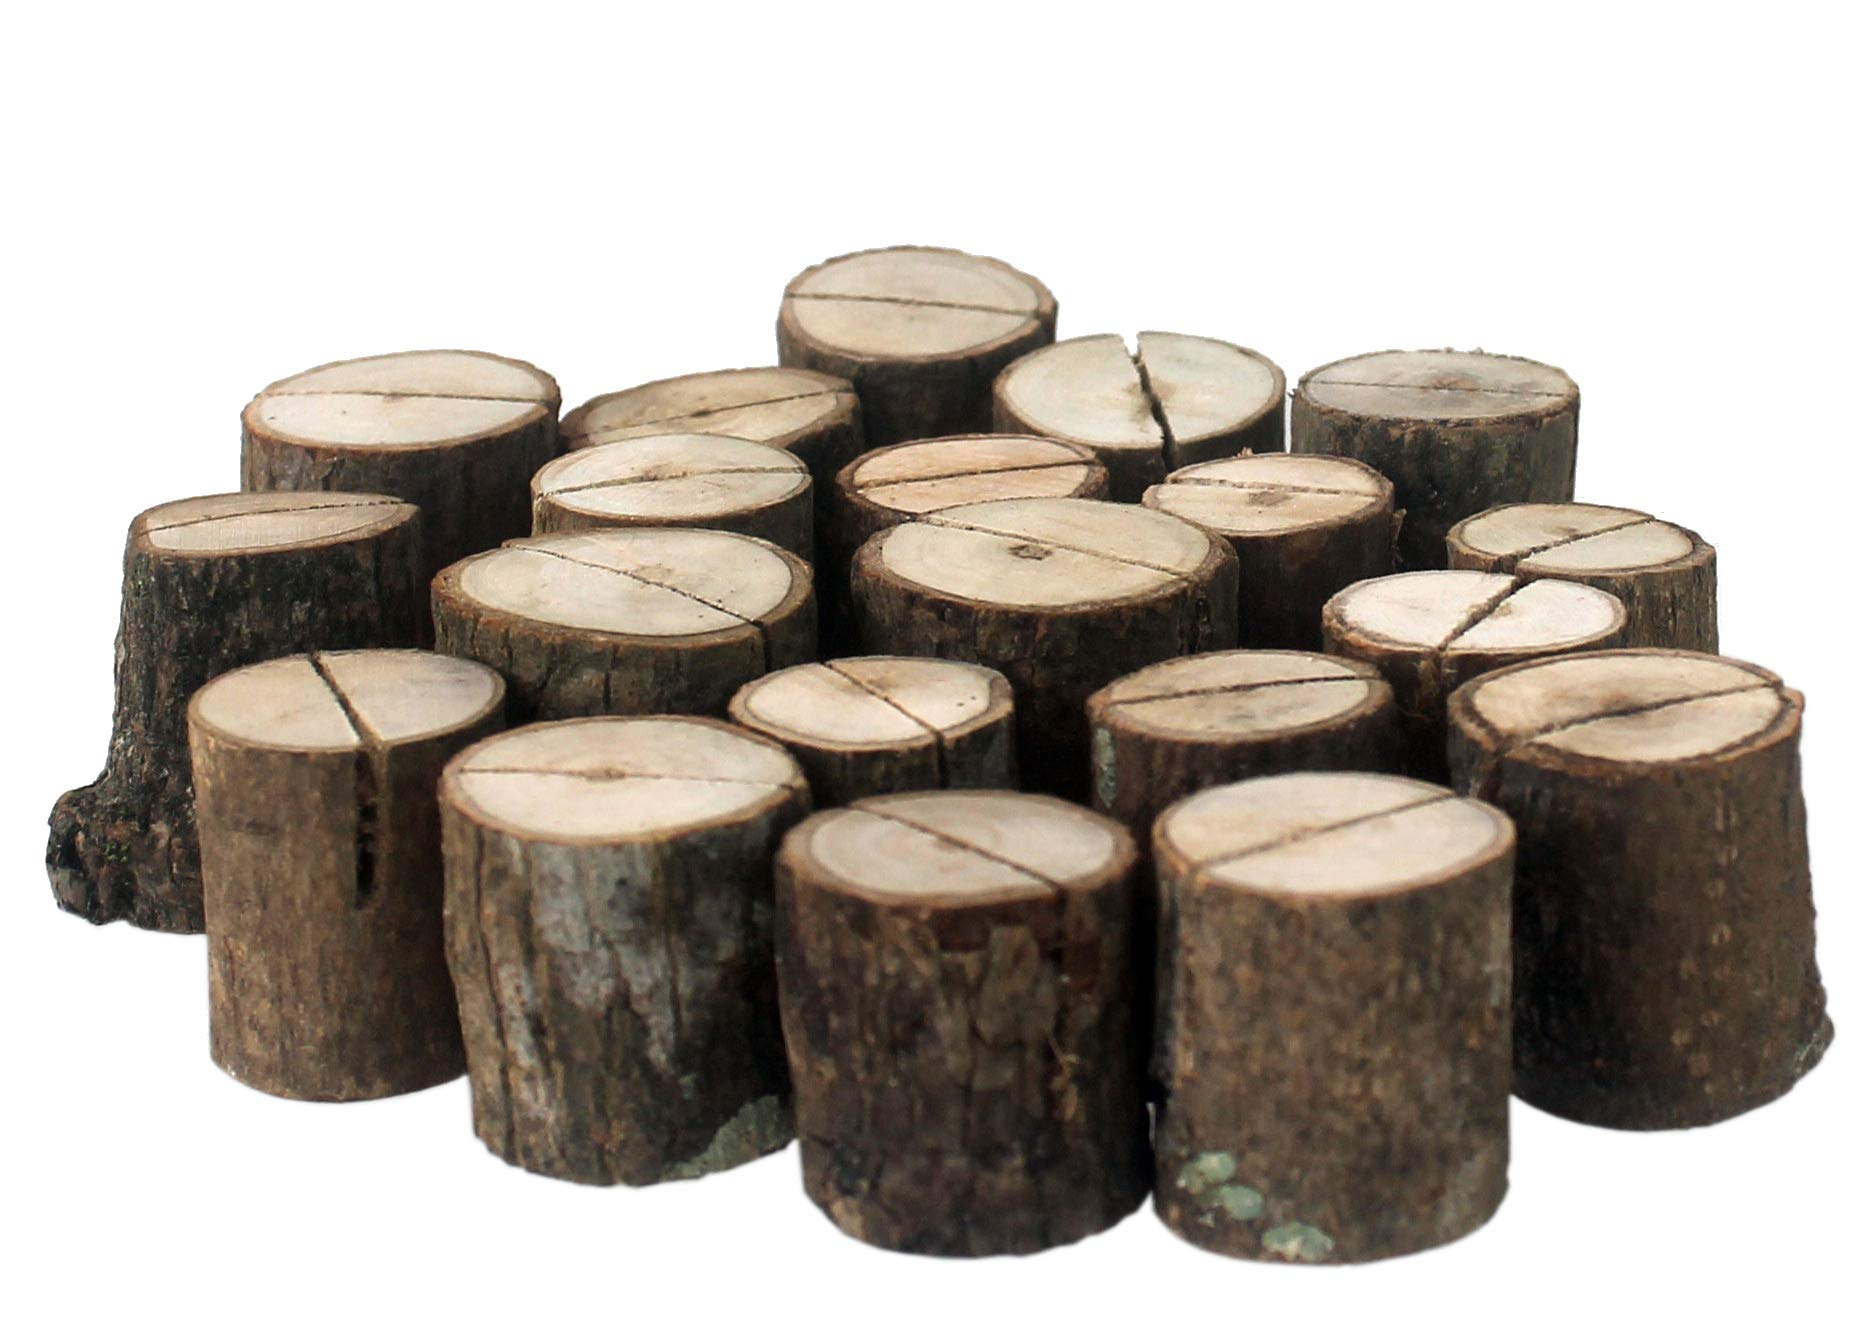 Nesha Rustic Bark Wood Table Numbers or Place Card Holder Logs (20 pcs)